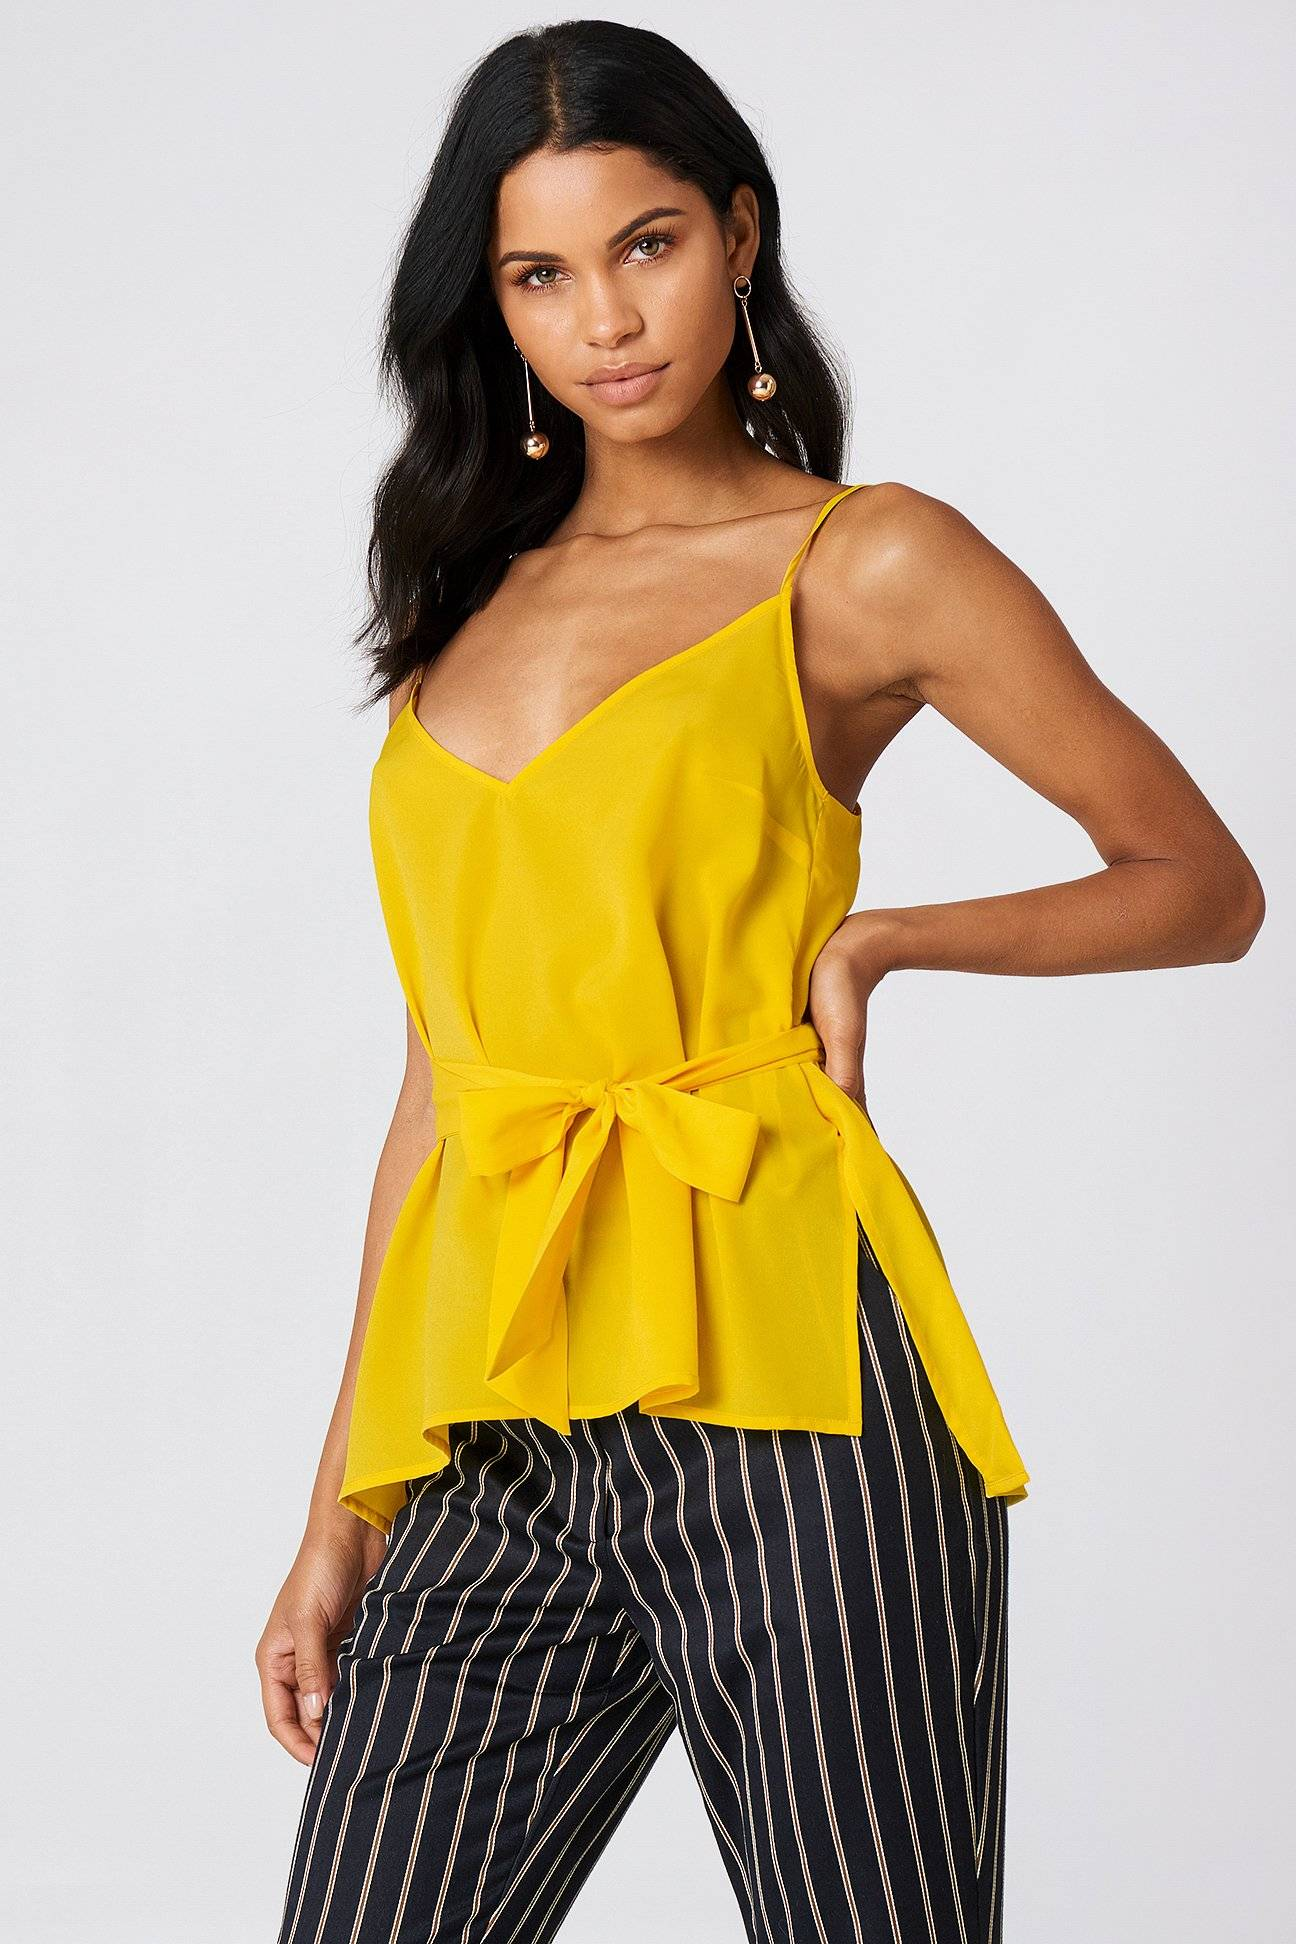 French Connection Dalma Strappy Top - Yellow